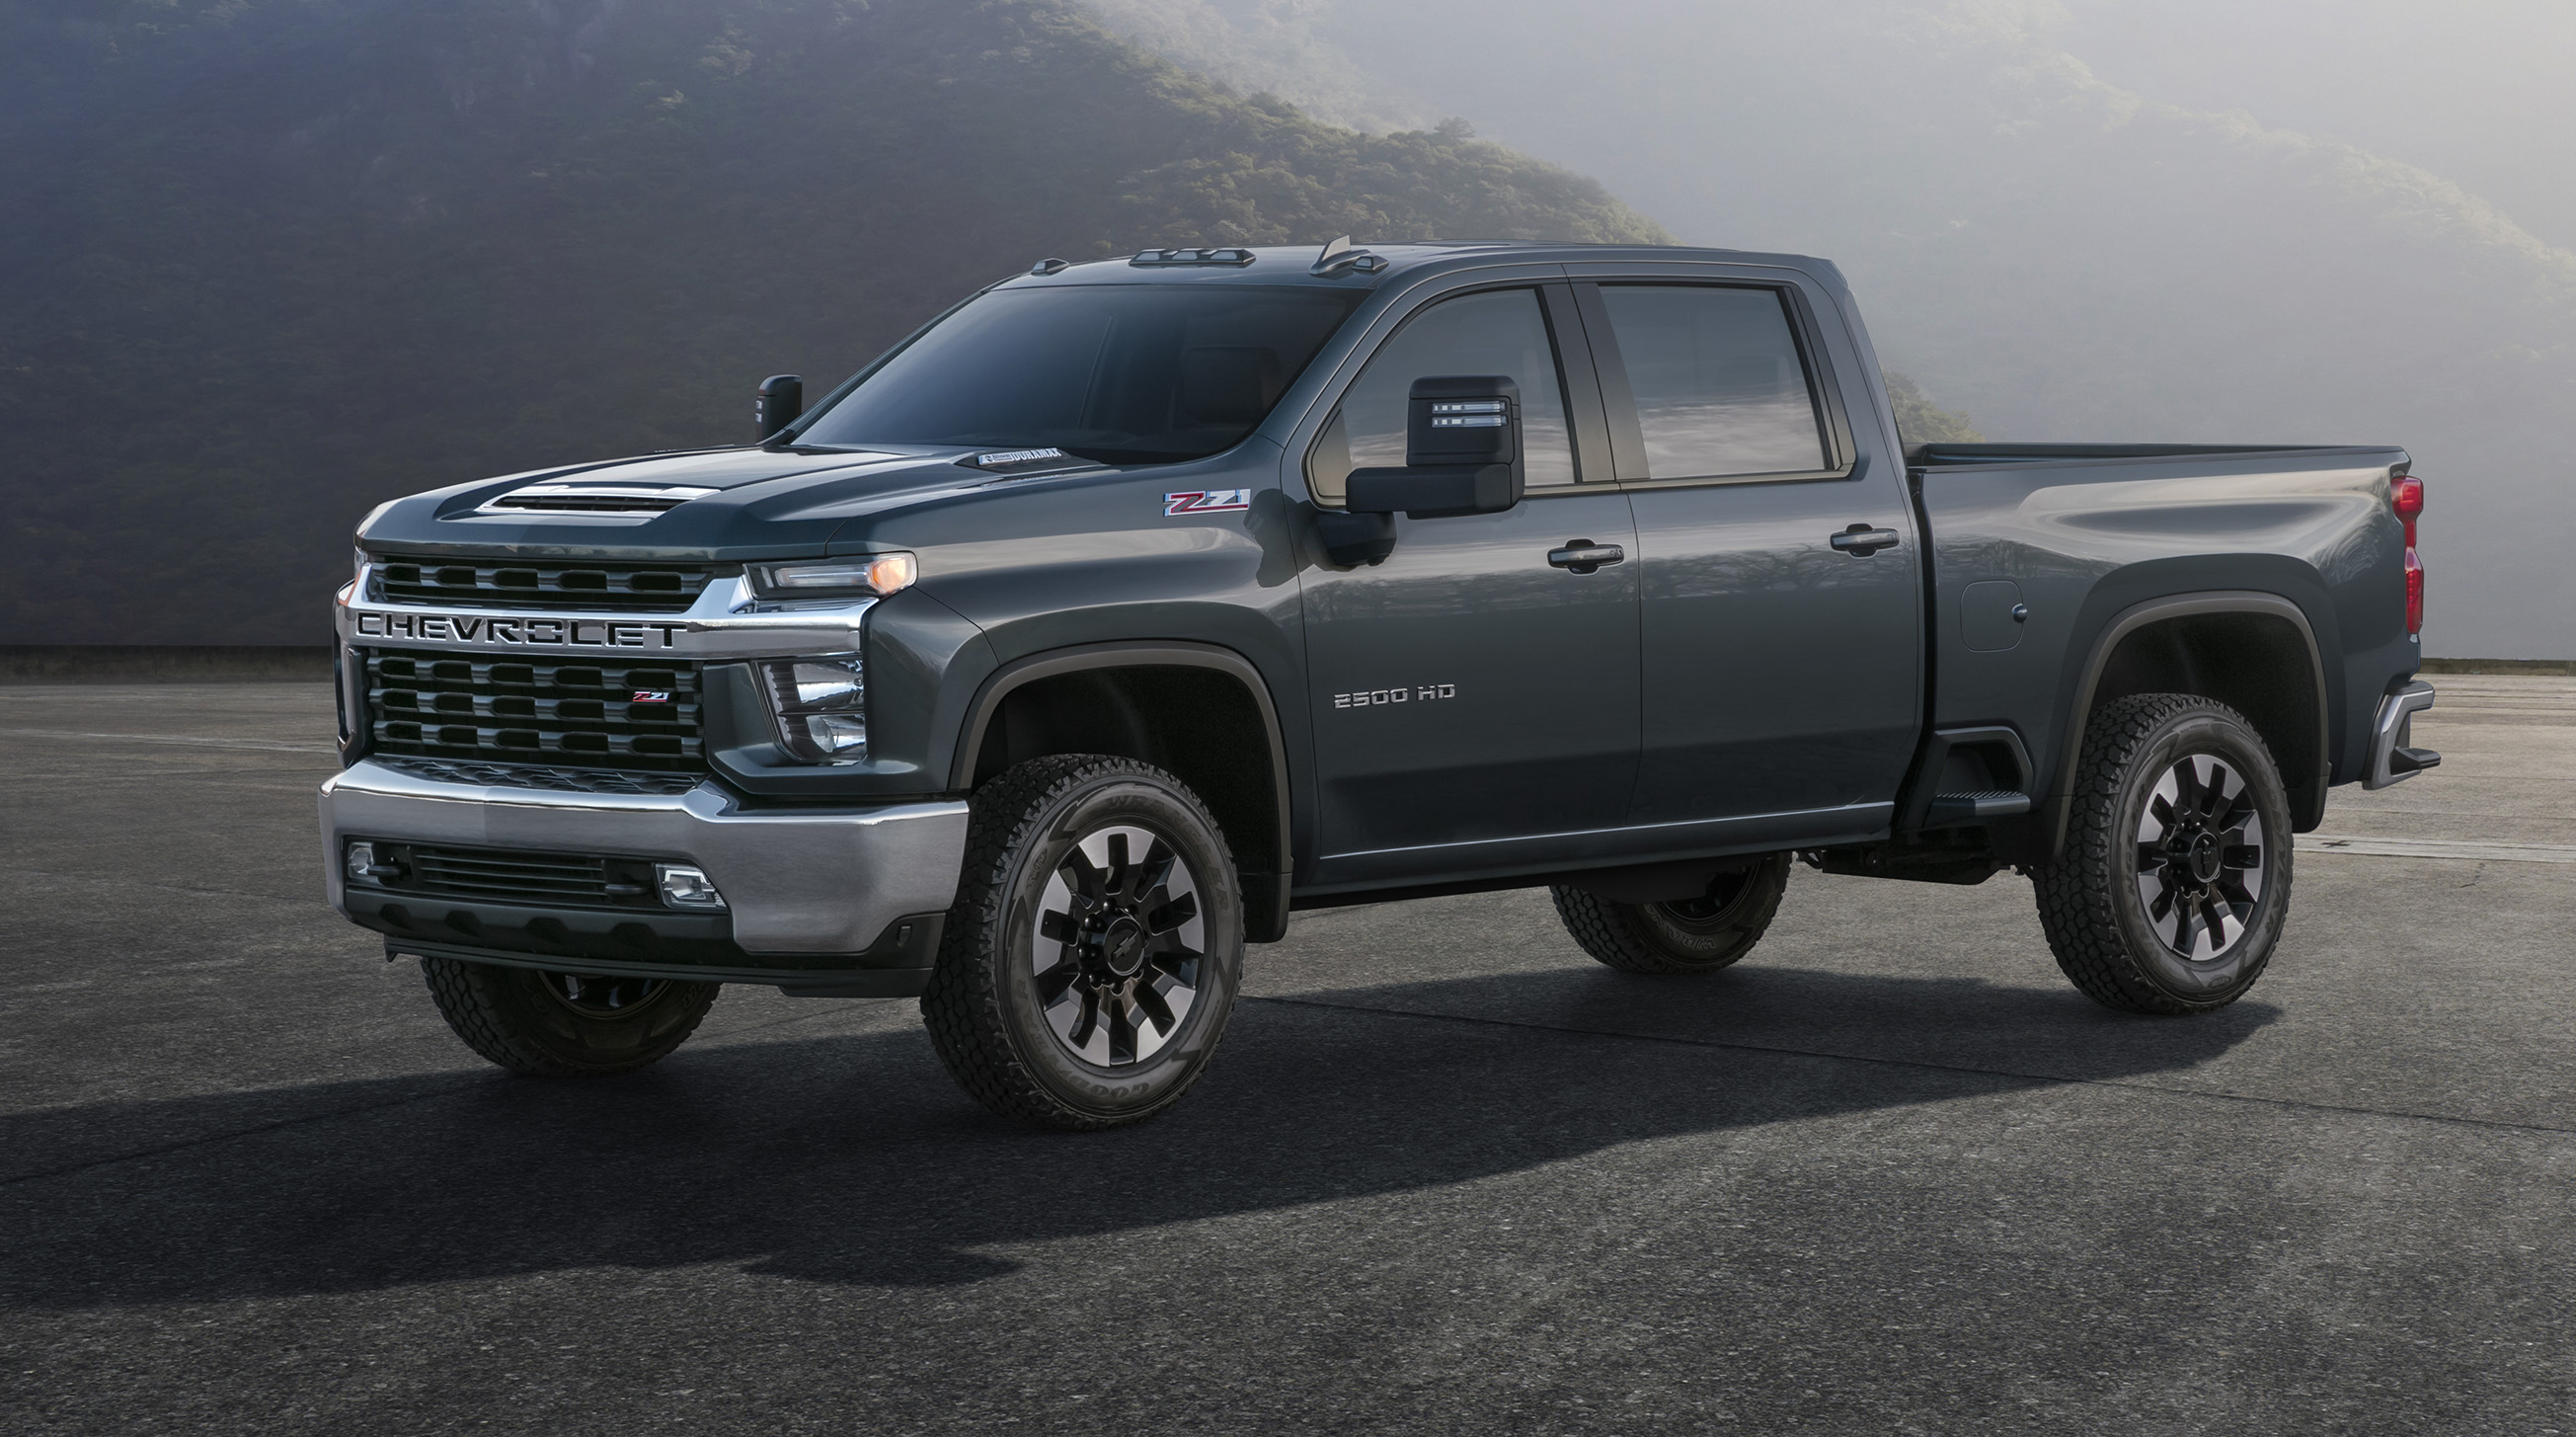 84 The Best 2020 Chevy Silverado 1500 2500 New Concept